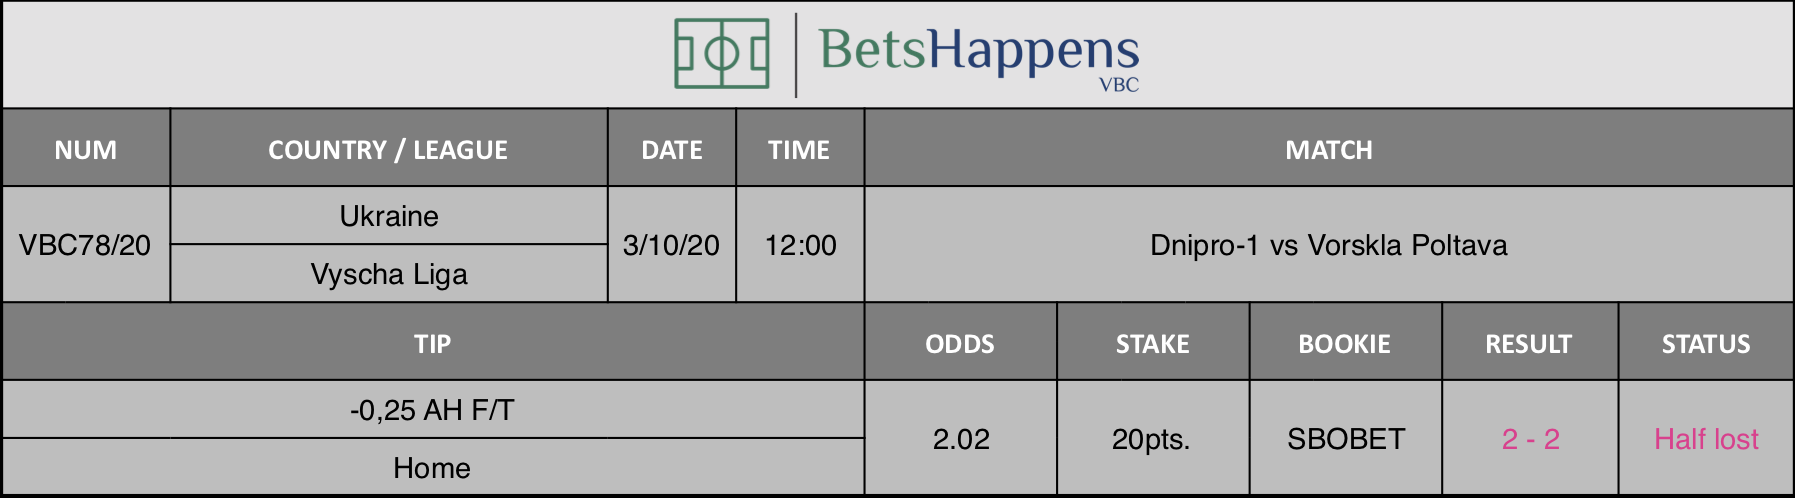 Results of our prediction for the game Dnipro-1 vs Vorskla Poltava in which -0.25 AH F / T Home is recommended.